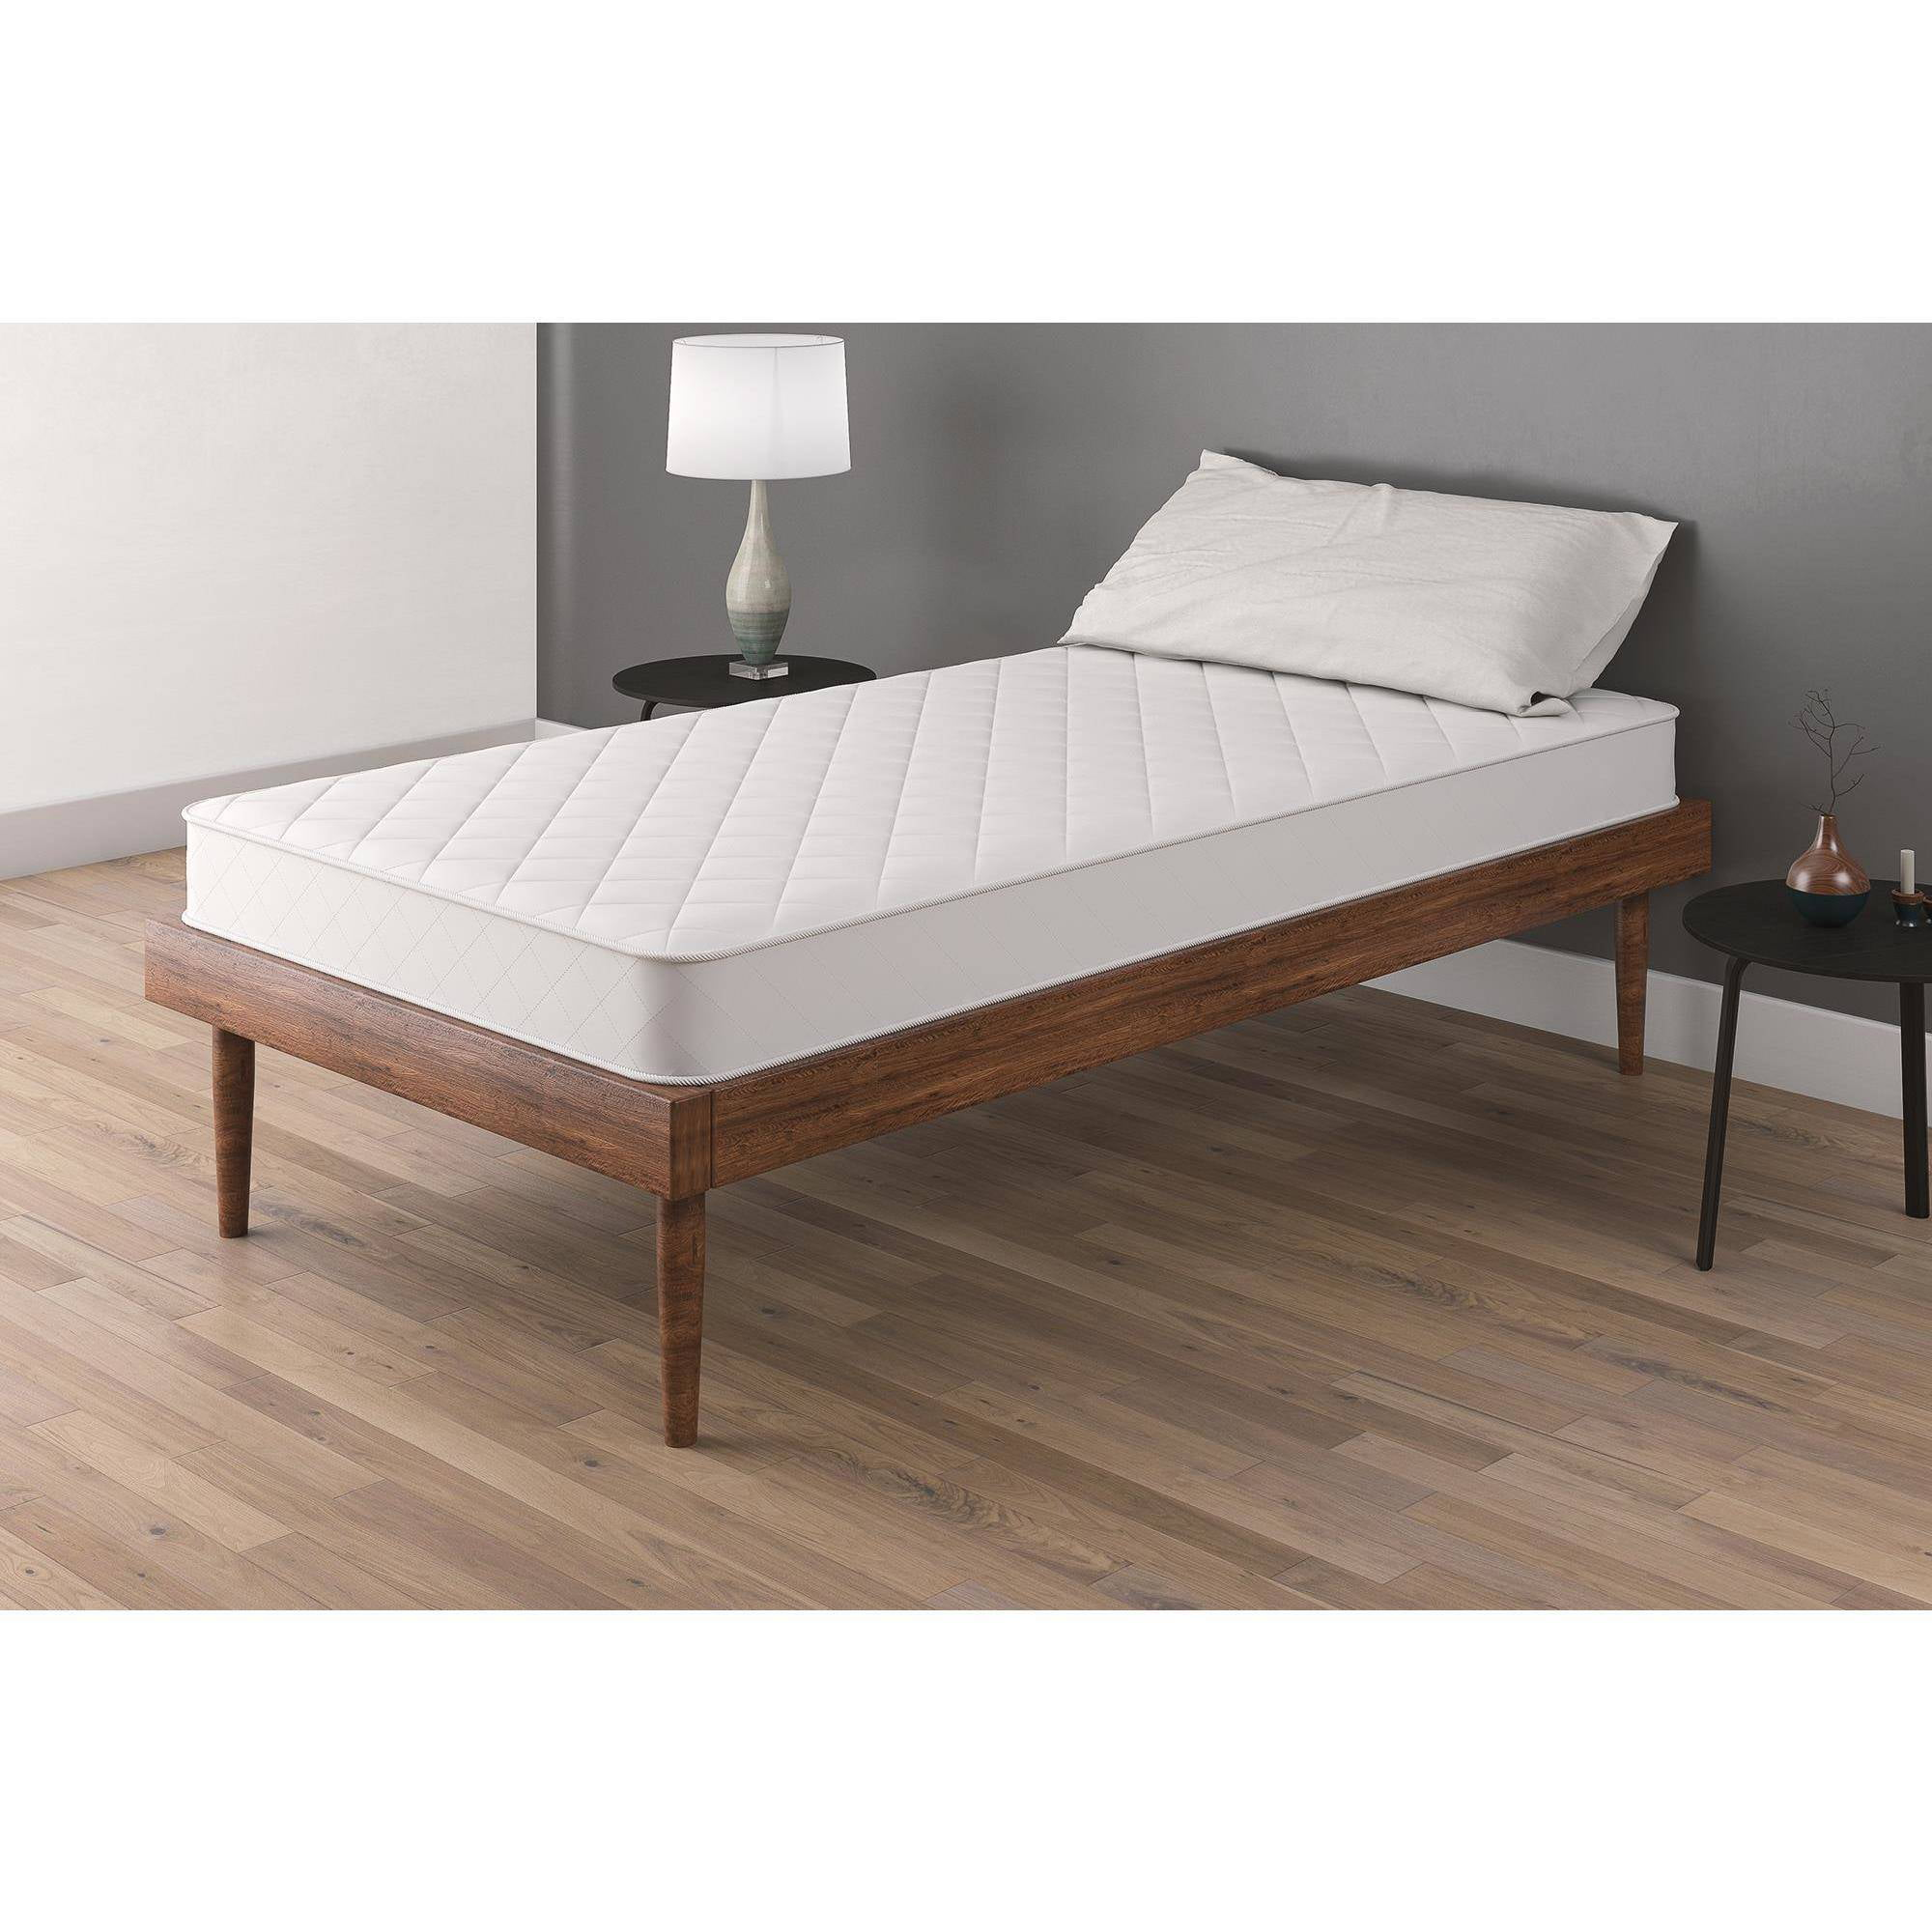 Signature Sleep Gold 6 Inch Bonnell Coil Twin Mattress-In-a-Box by Dorel Home Products